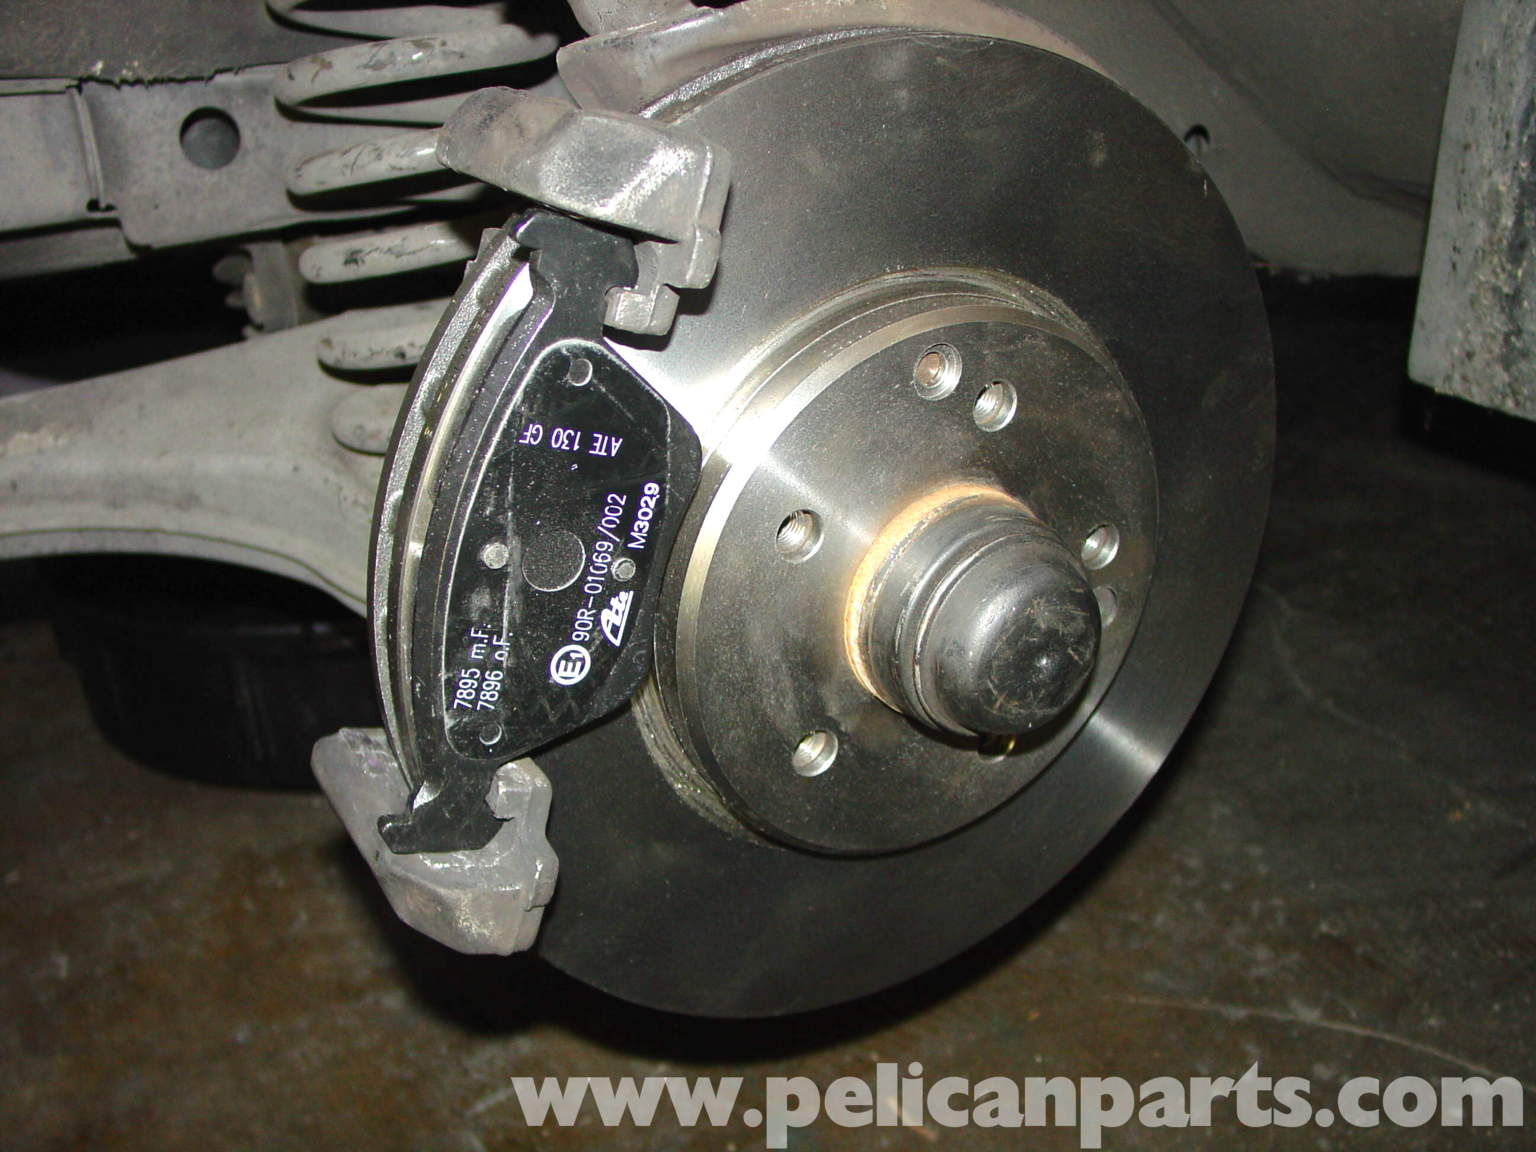 How to change front brake pads on 2006 mercedes c230 for Mercedes benz rotors and pads